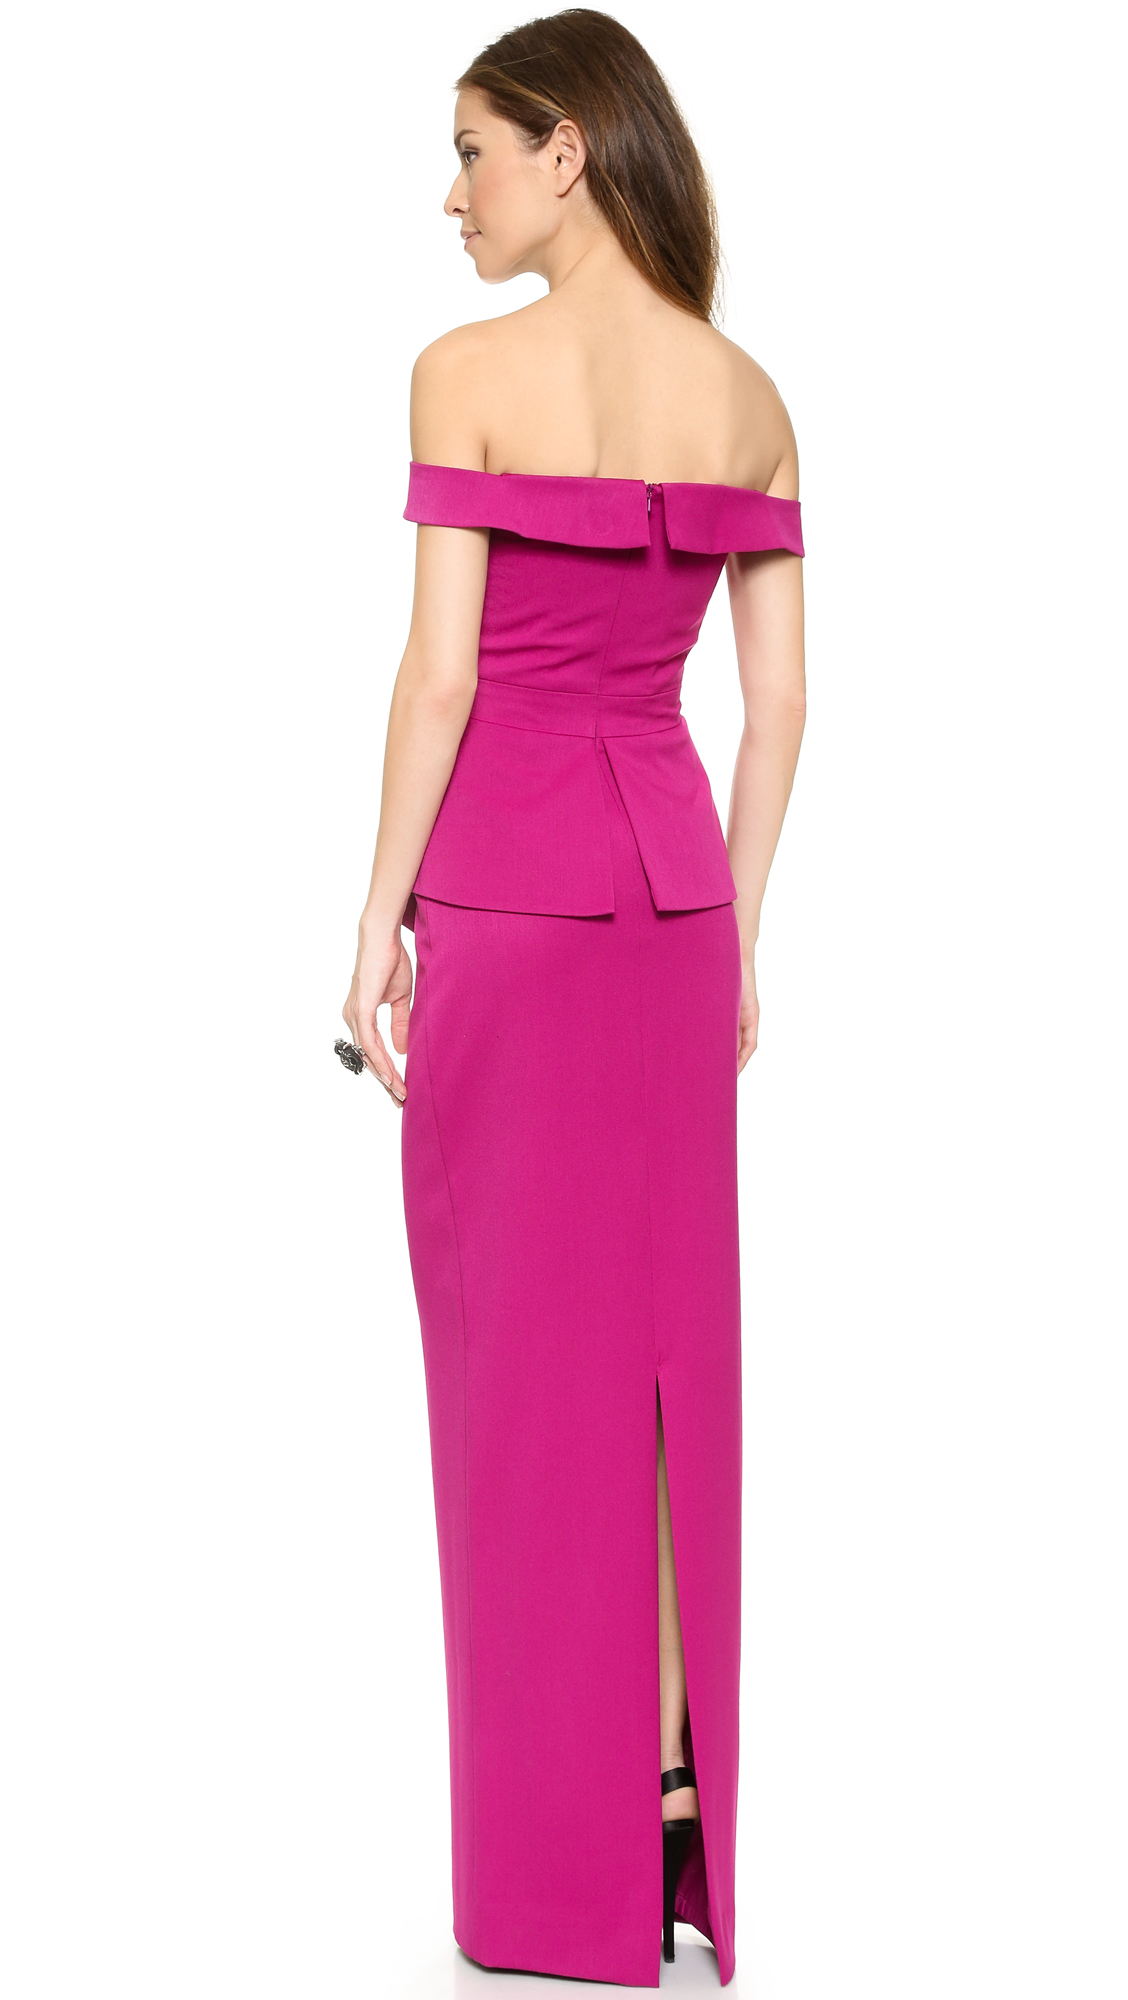 Lyst - Black Halo La Reina Gown in Purple